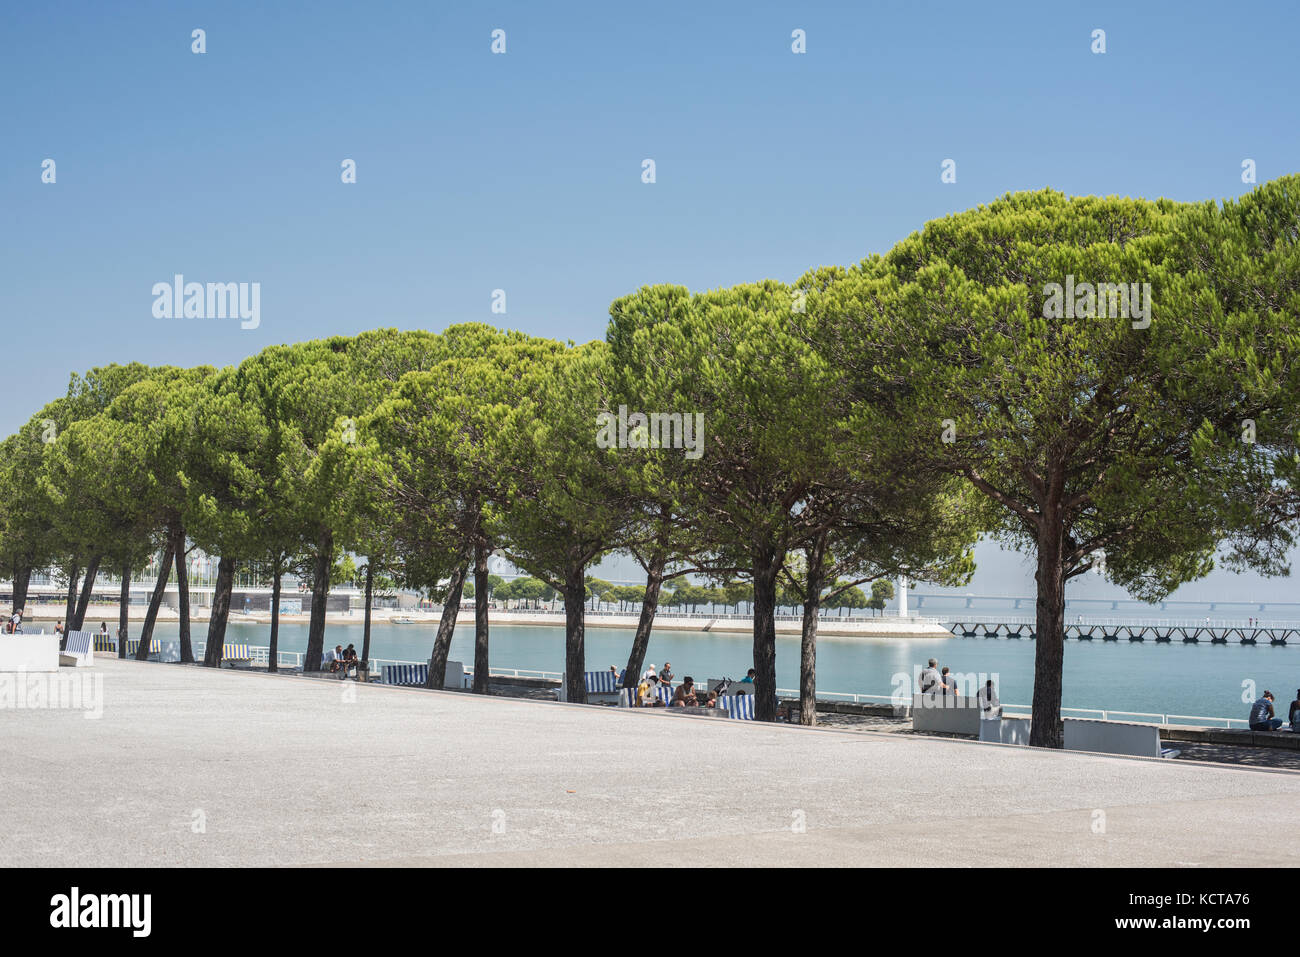 Trees near the edge of the River Tagus, Parque das Nacoes - Stock Image